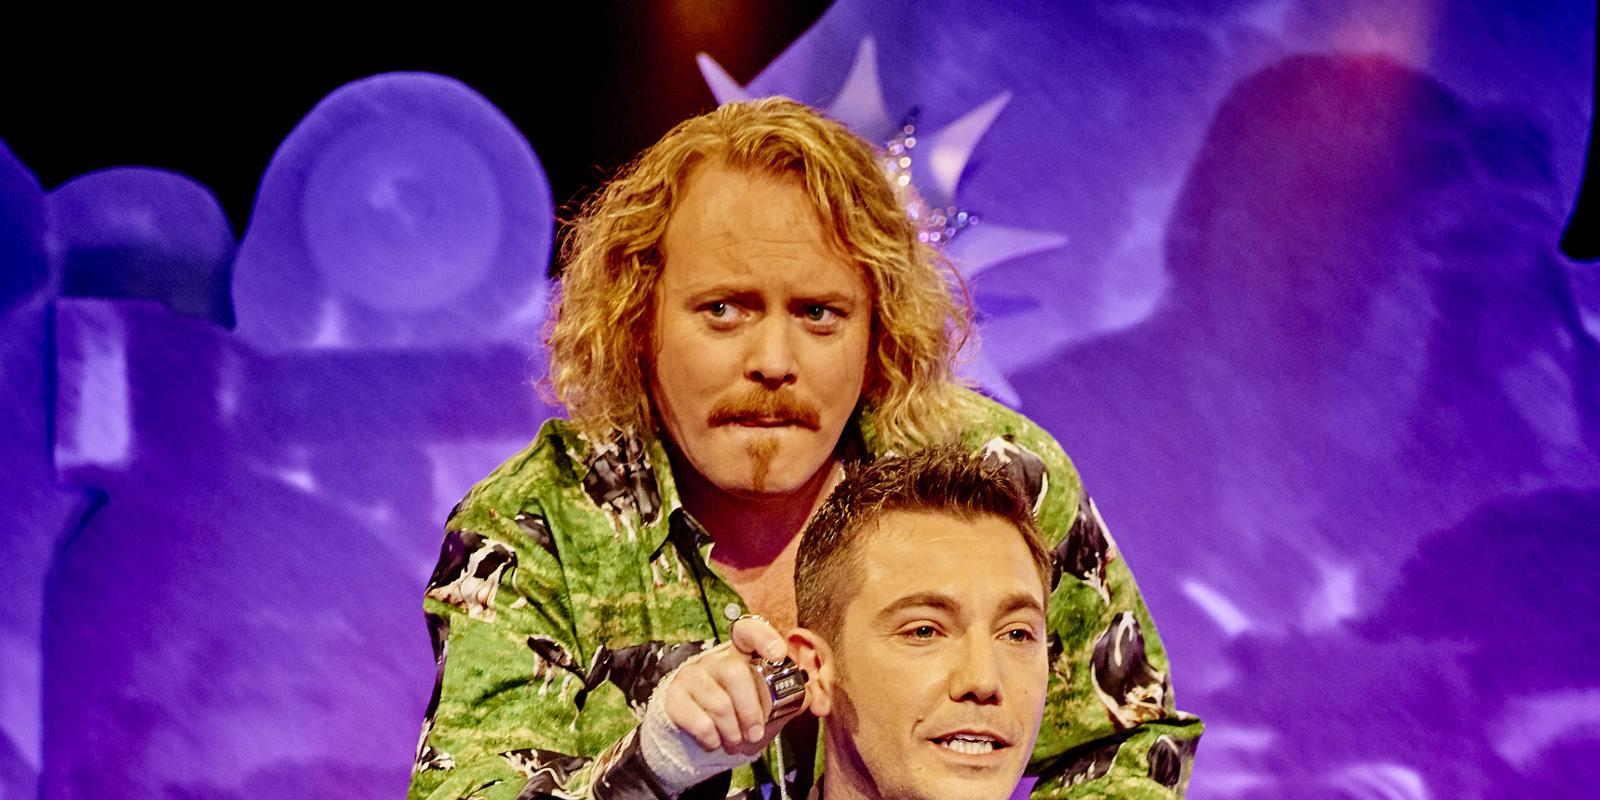 Reviews: Celebrity Juice - IMDb